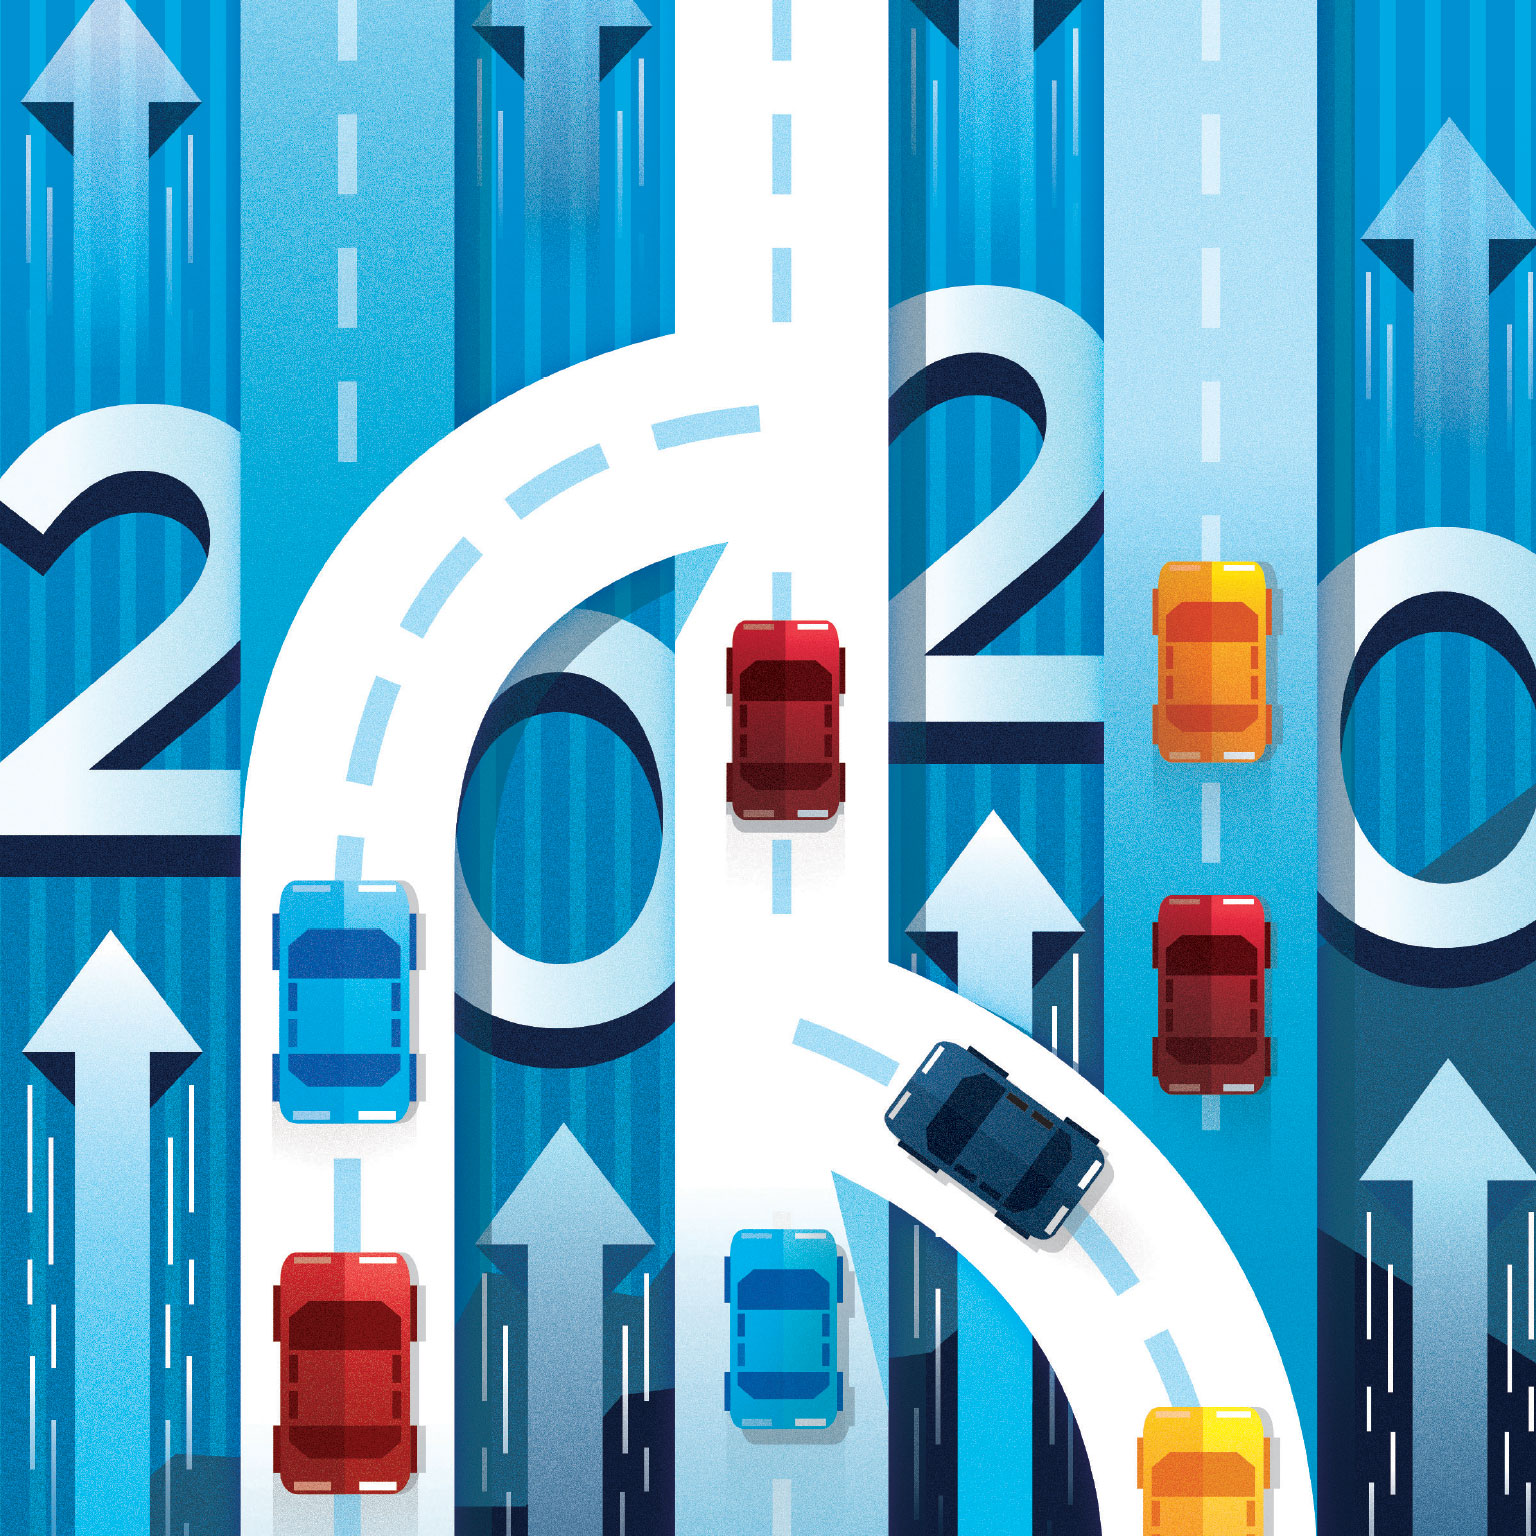 The road to 2020 and beyond: What's driving the global automotive industry  | McKinsey